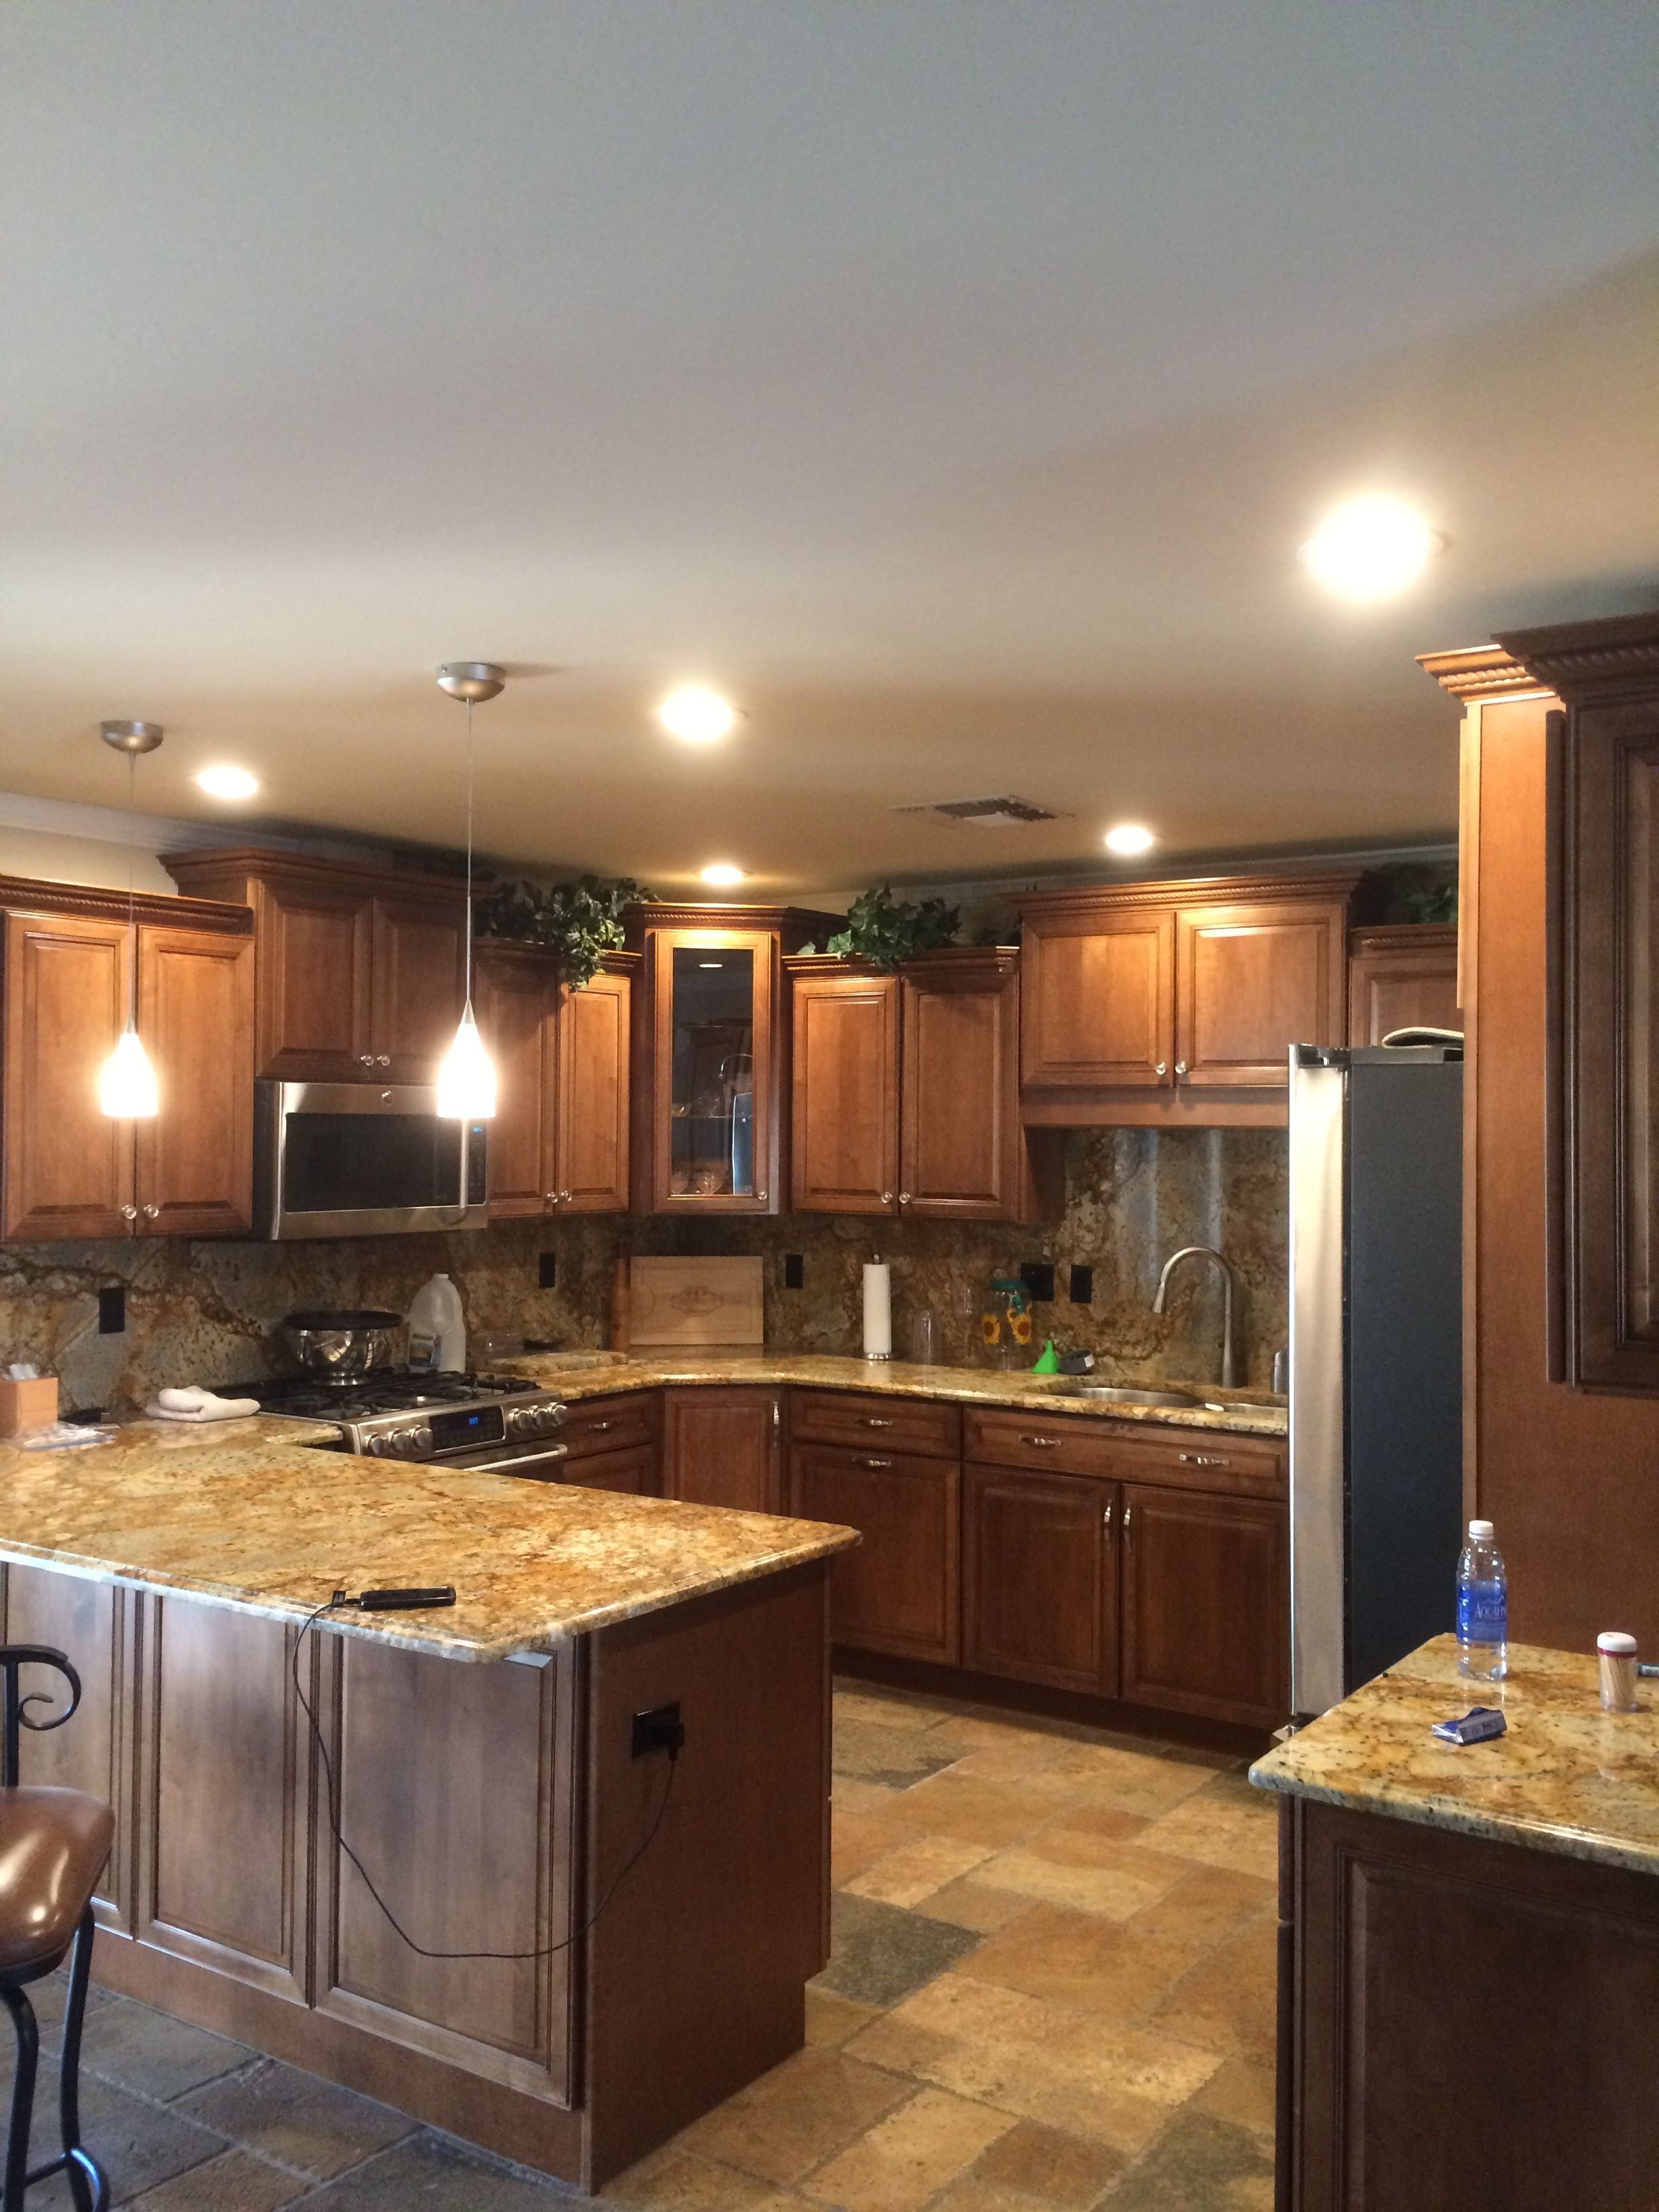 pot lights for kitchen remodel ideas small kitchens az recessed lighting installation of 4 inch leds in